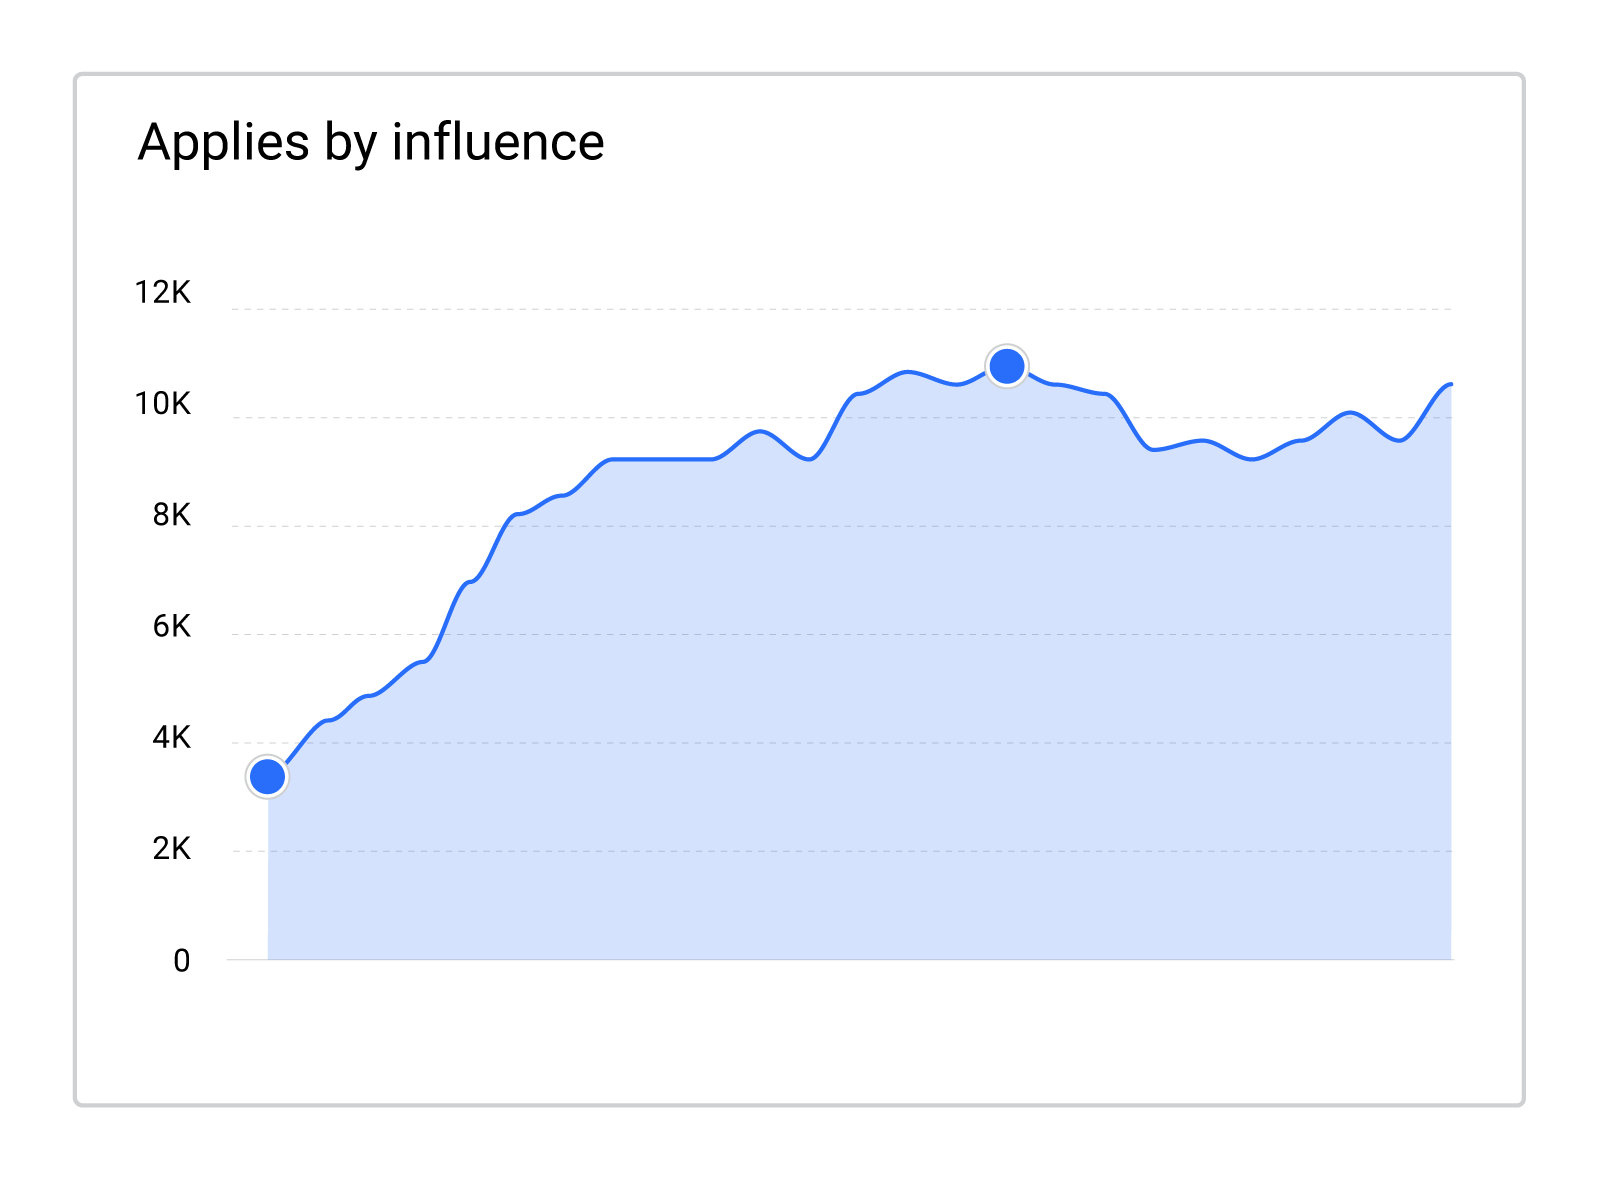 UiPath recruitment marketing campaign applications by influence